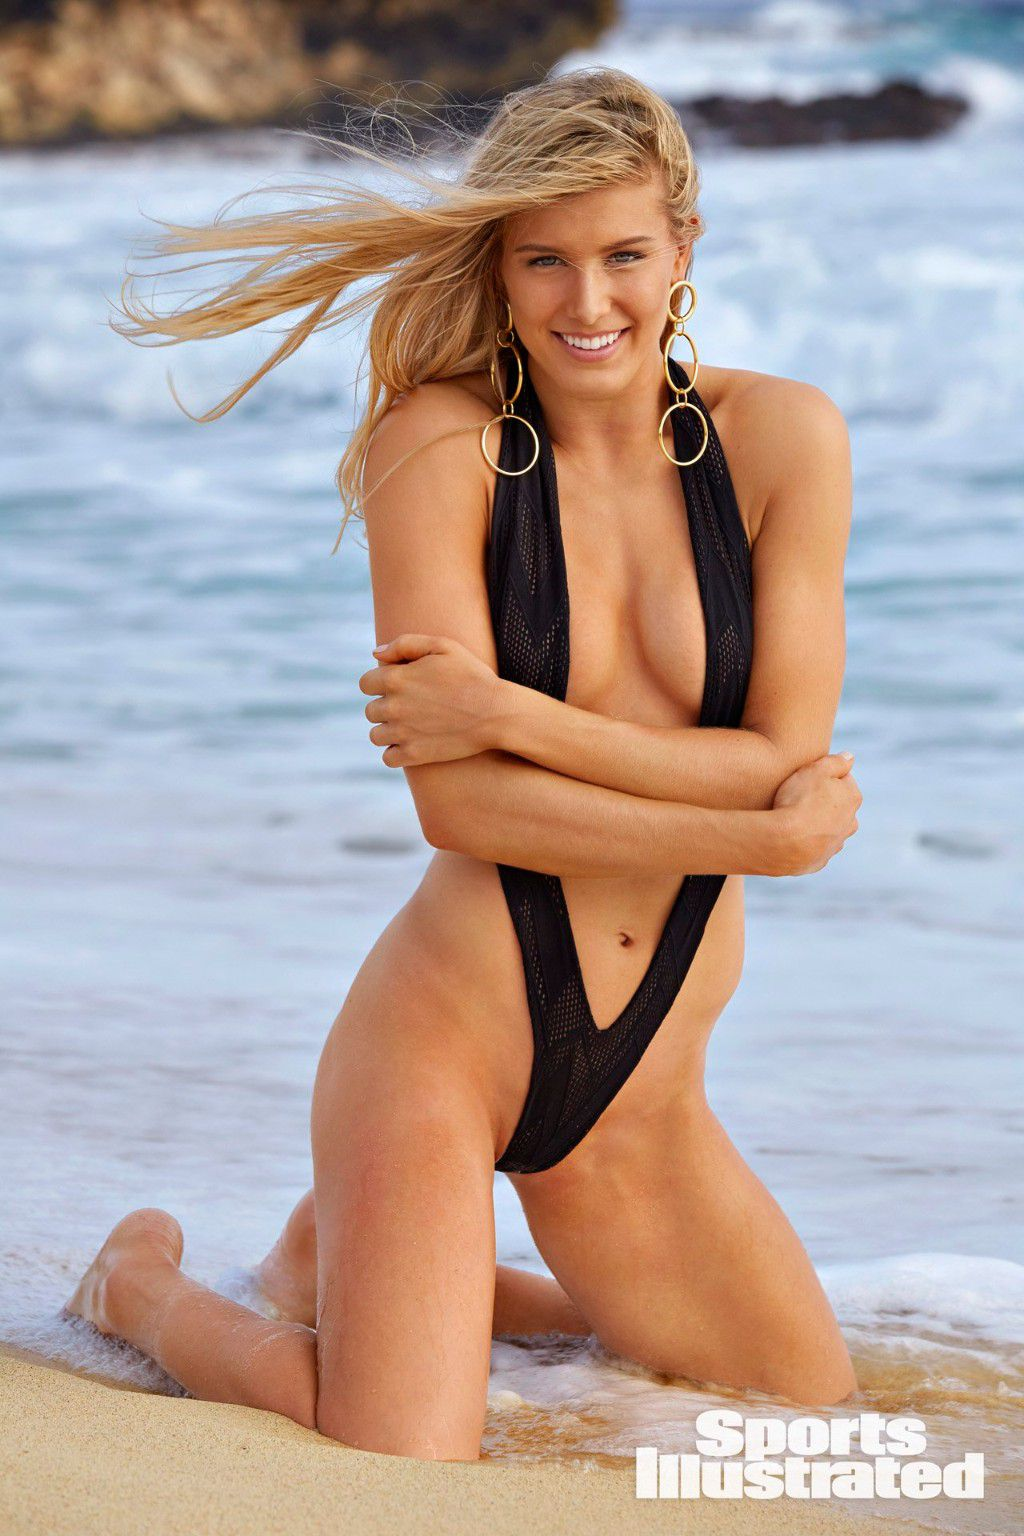 eugenie-bouchard-super-sexy-in-sports-illustrated-swimsuit-issue-2018-10